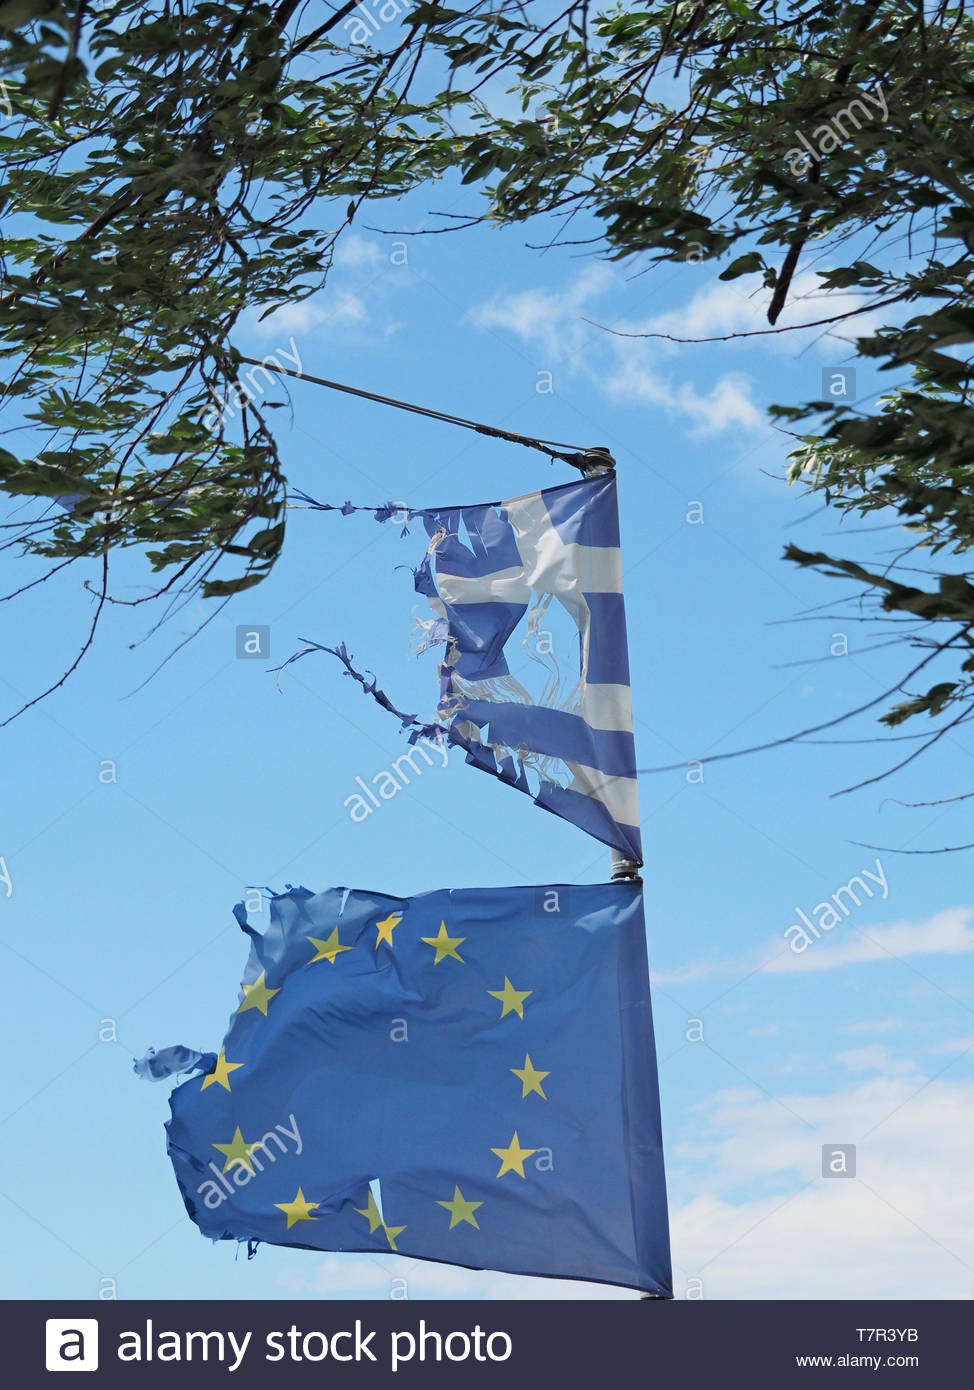 damaged by the wind, isolated flags of European union and Greece, illustrating the results on any single country after years of cooperation within the - Stock Image